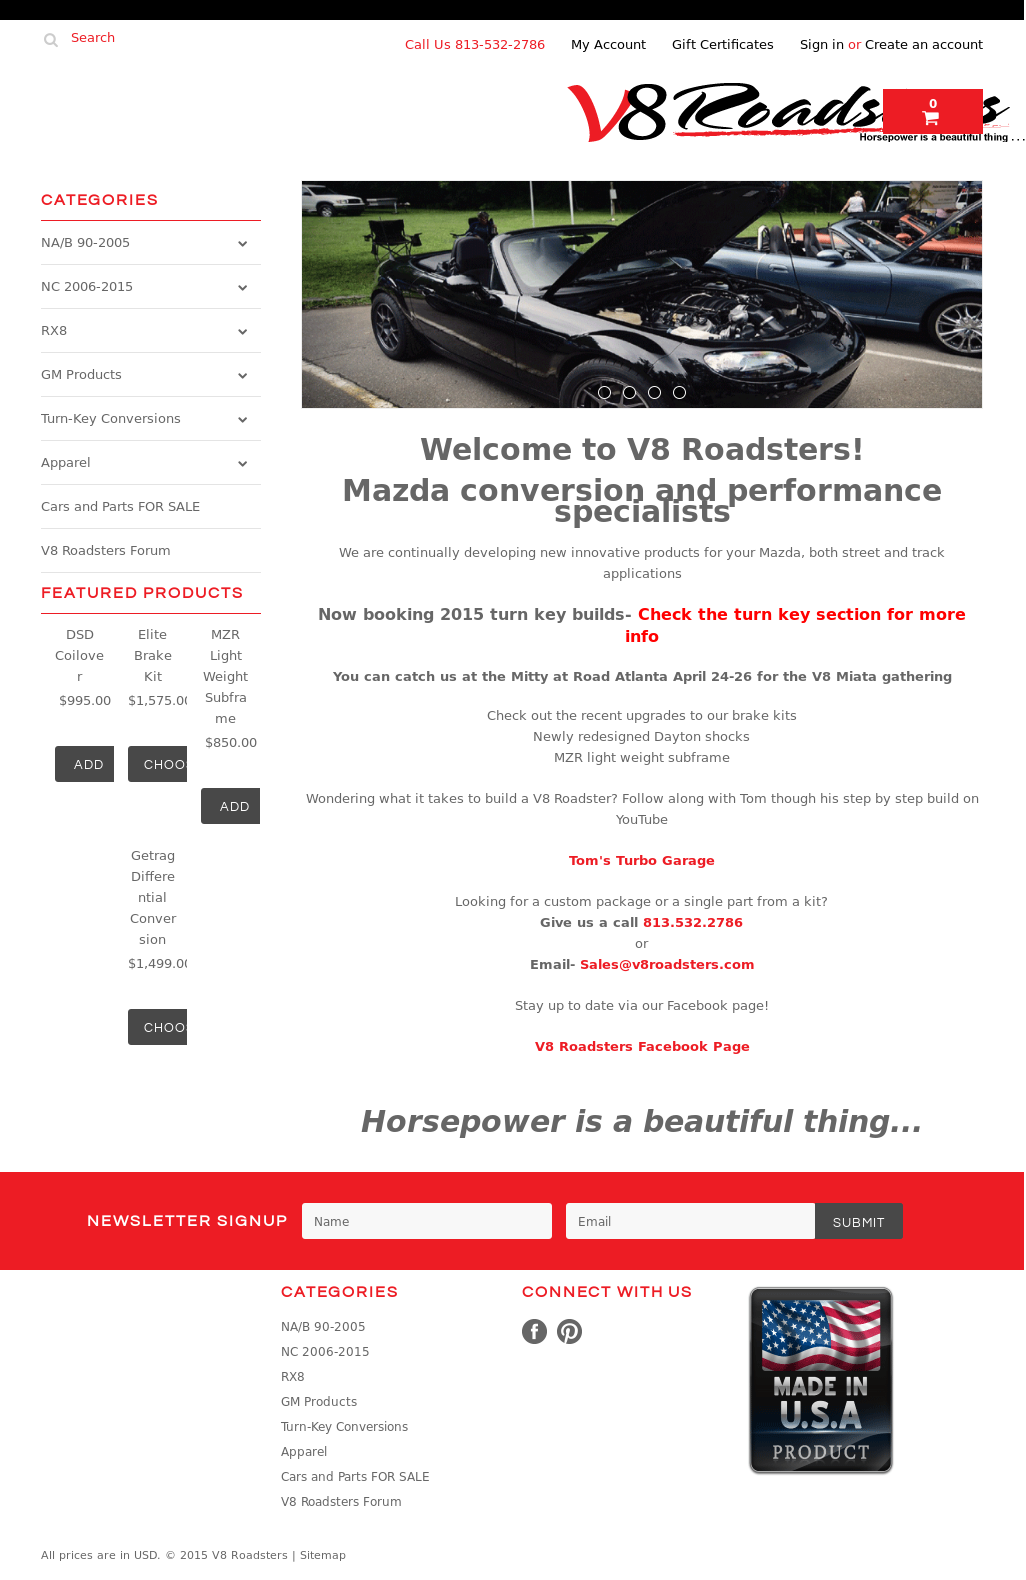 V8 Roadsters Competitors, Revenue and Employees - Owler